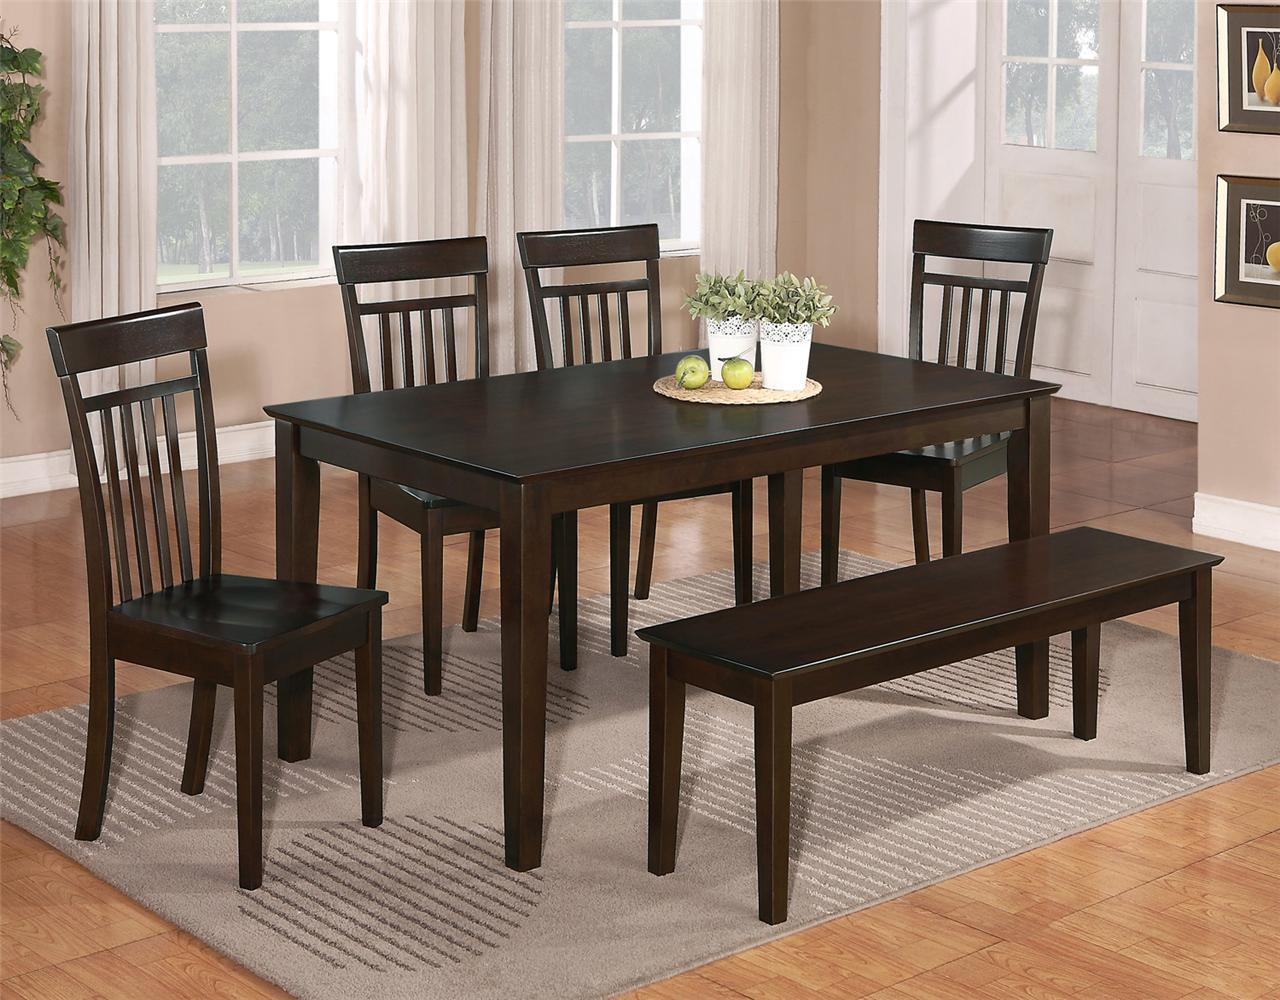 Dining Chairs Set 6 Pc Dinette Kitchen Dining Room Set Table W 4 Wood Chair